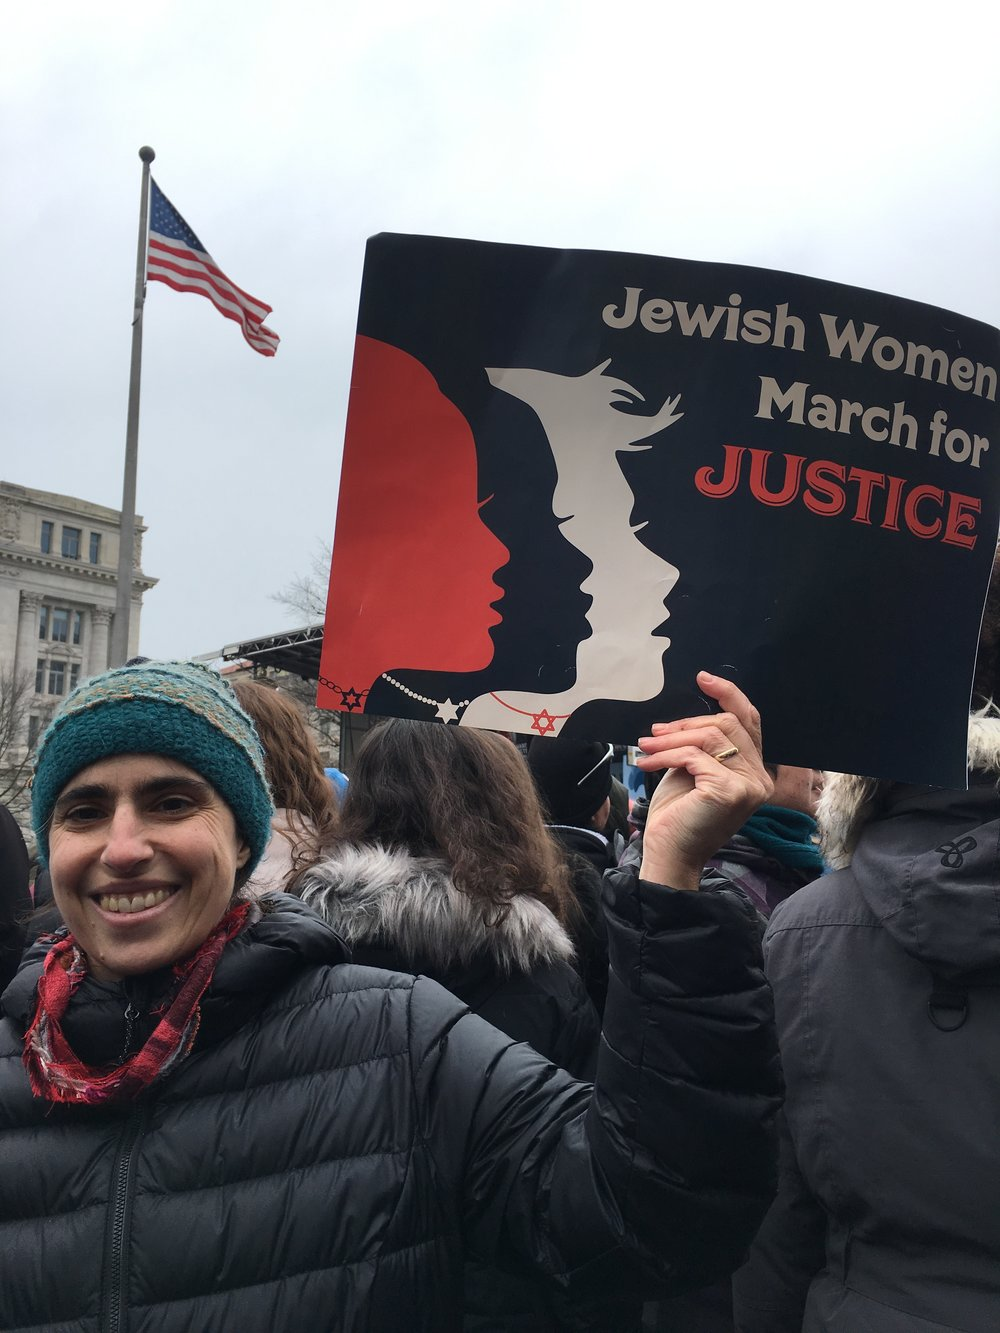 At the 2019 Women's March in Washington, DC